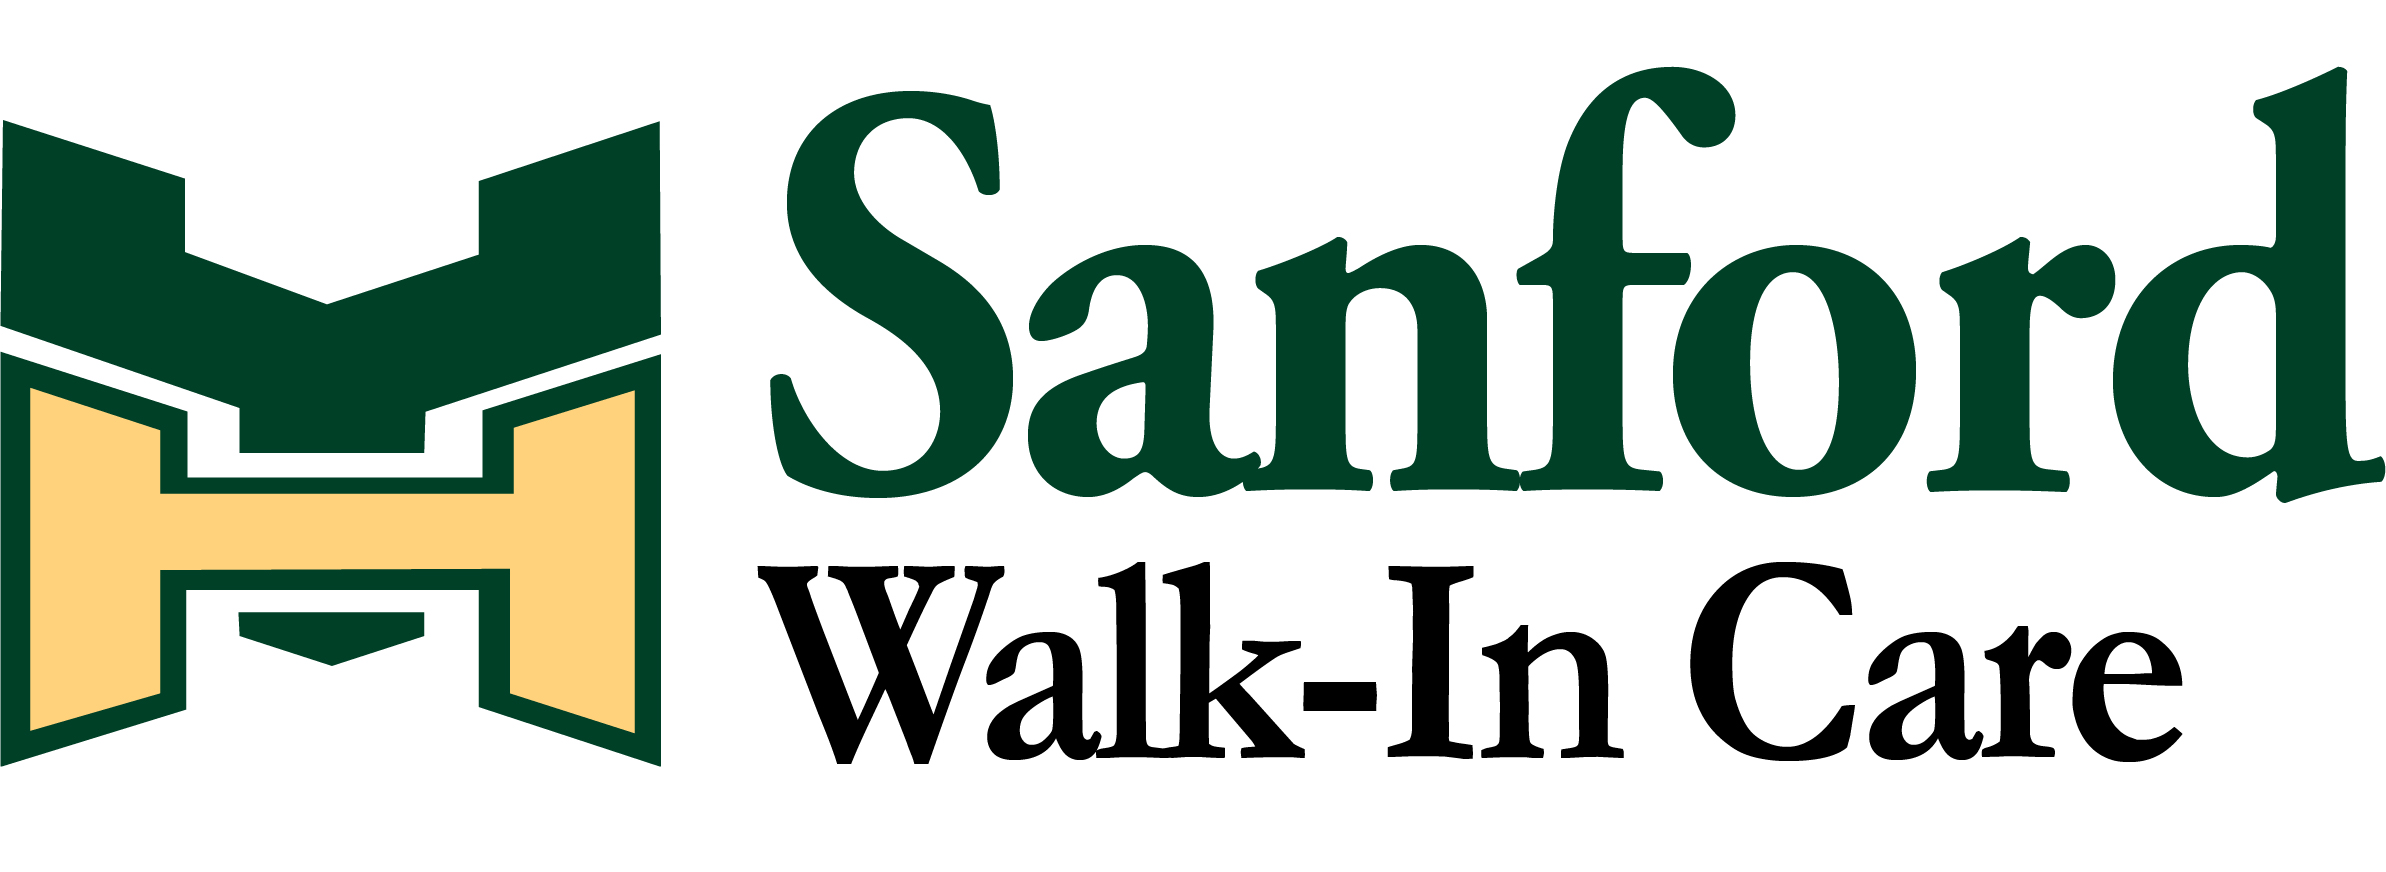 Walk in care sanford